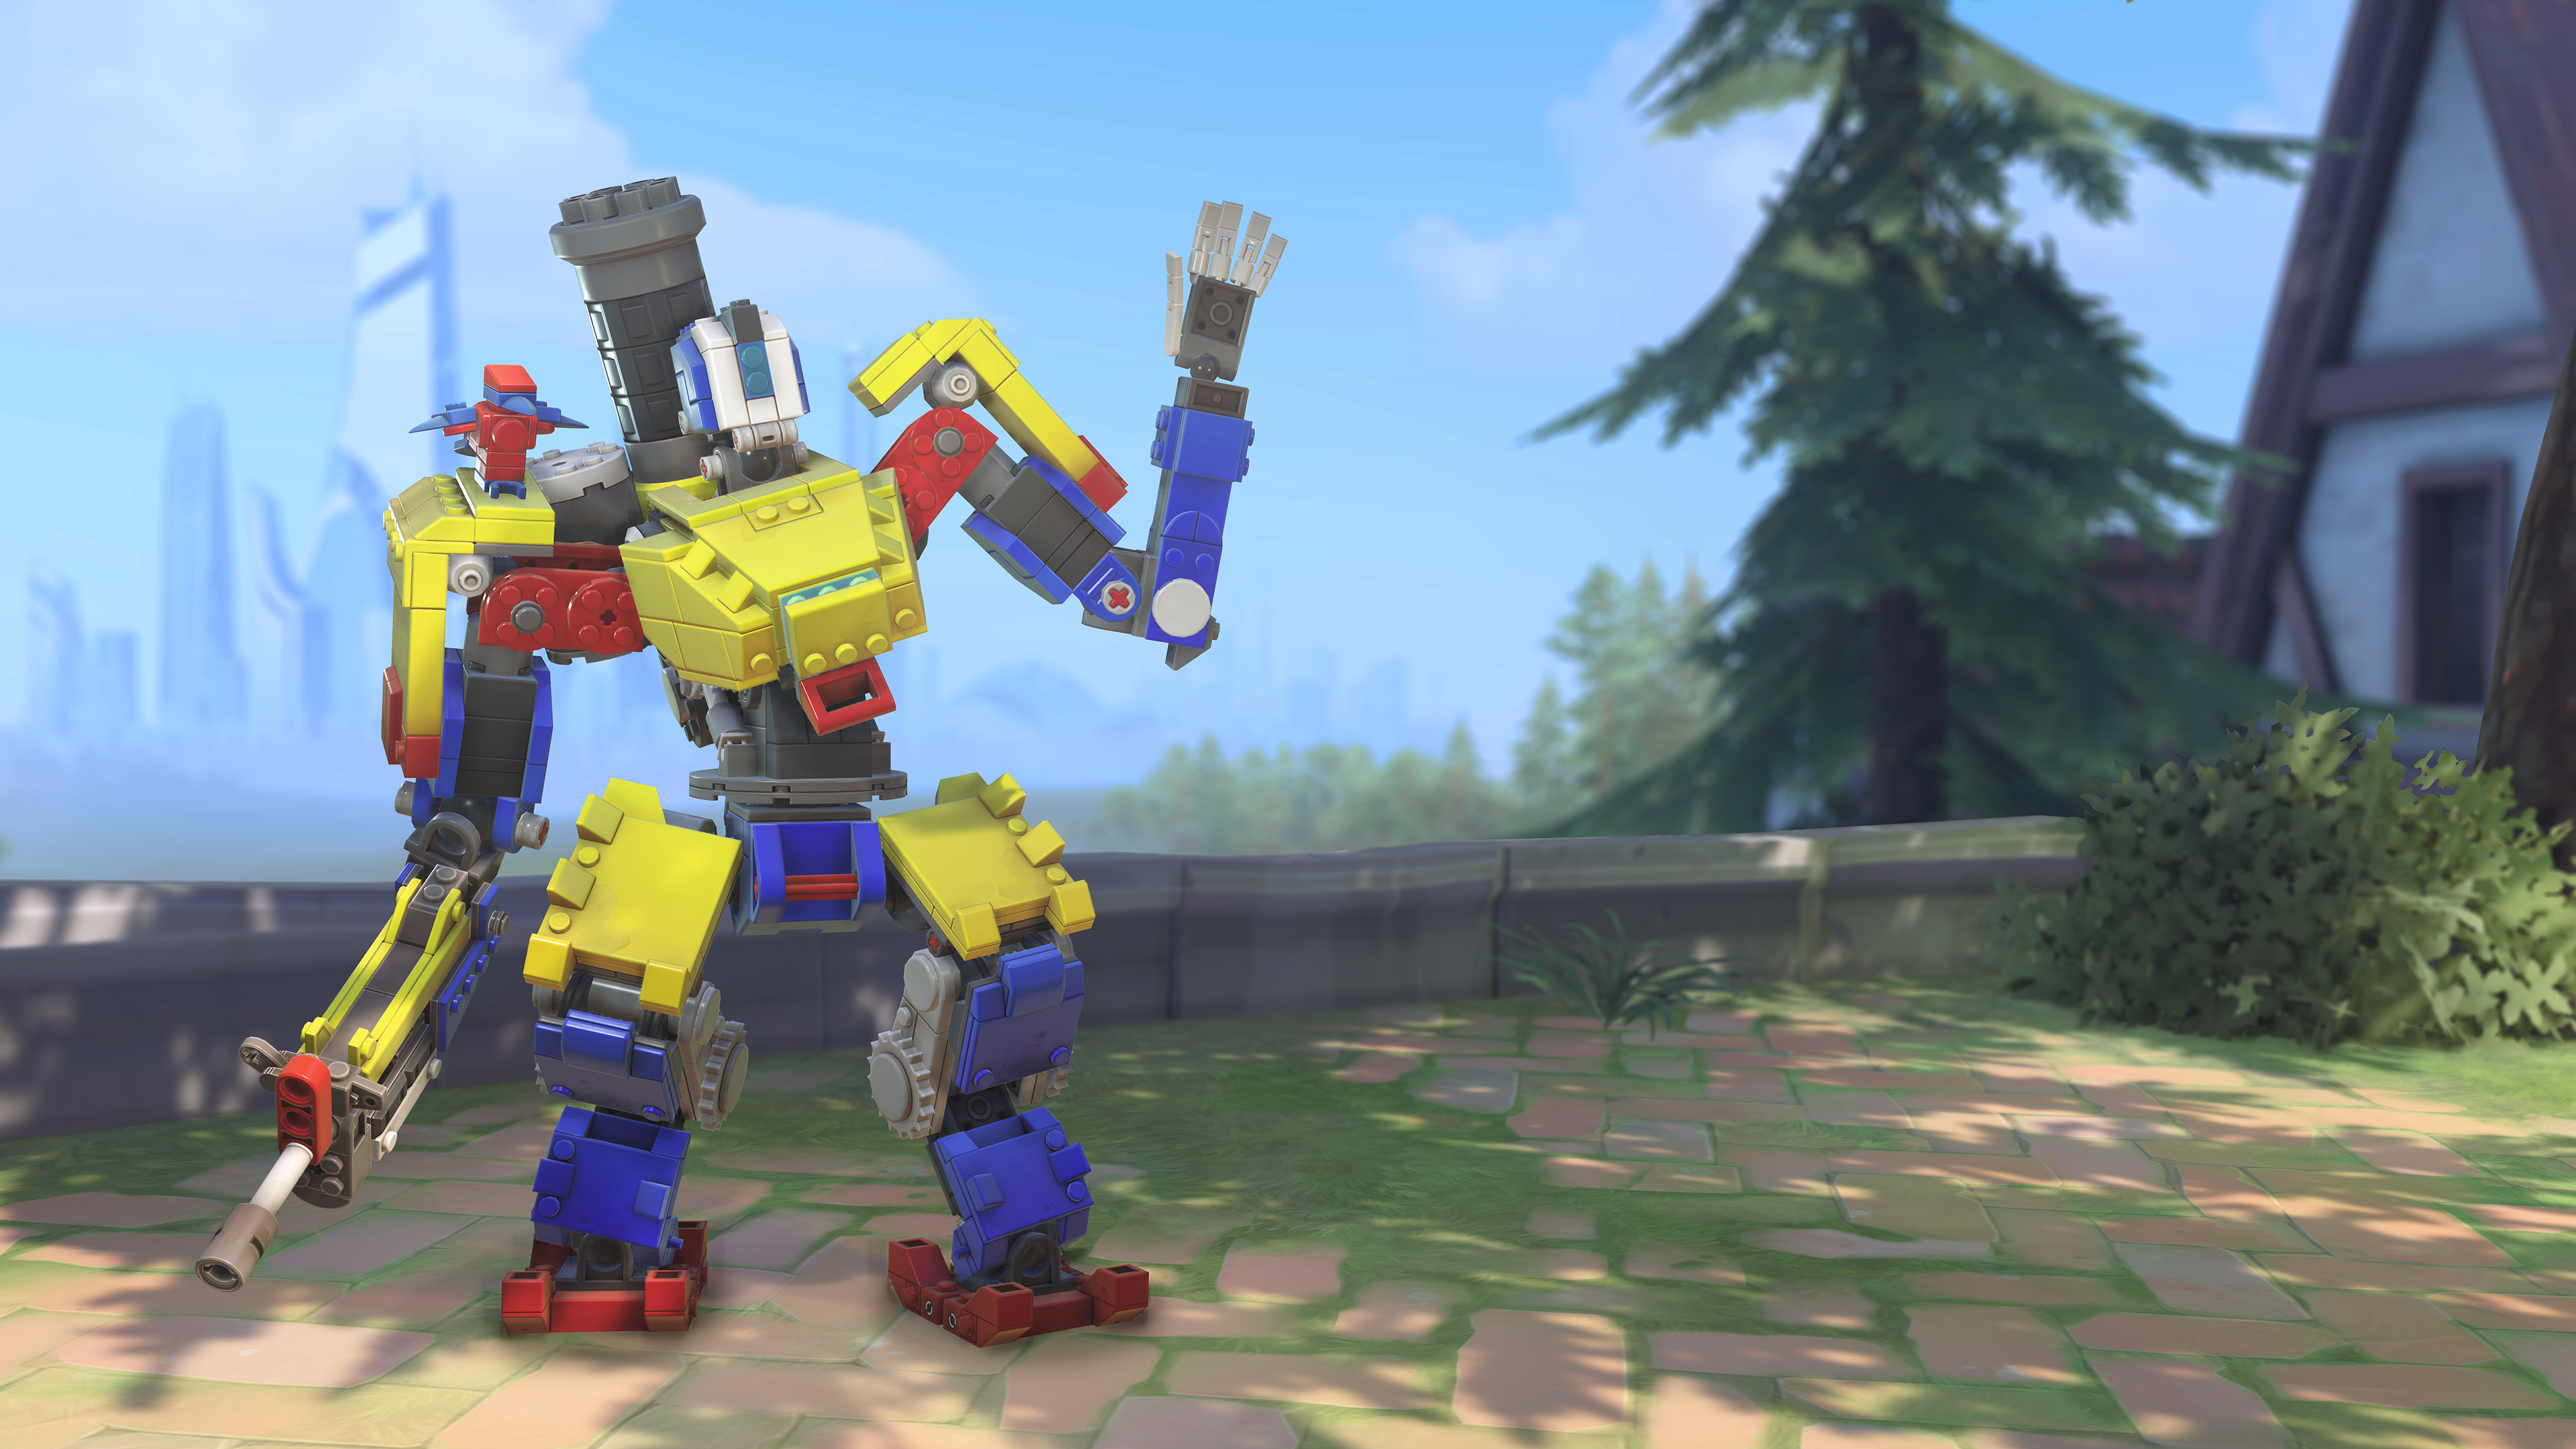 Overwatch's Lego Bastion skin even has Lego sound effects